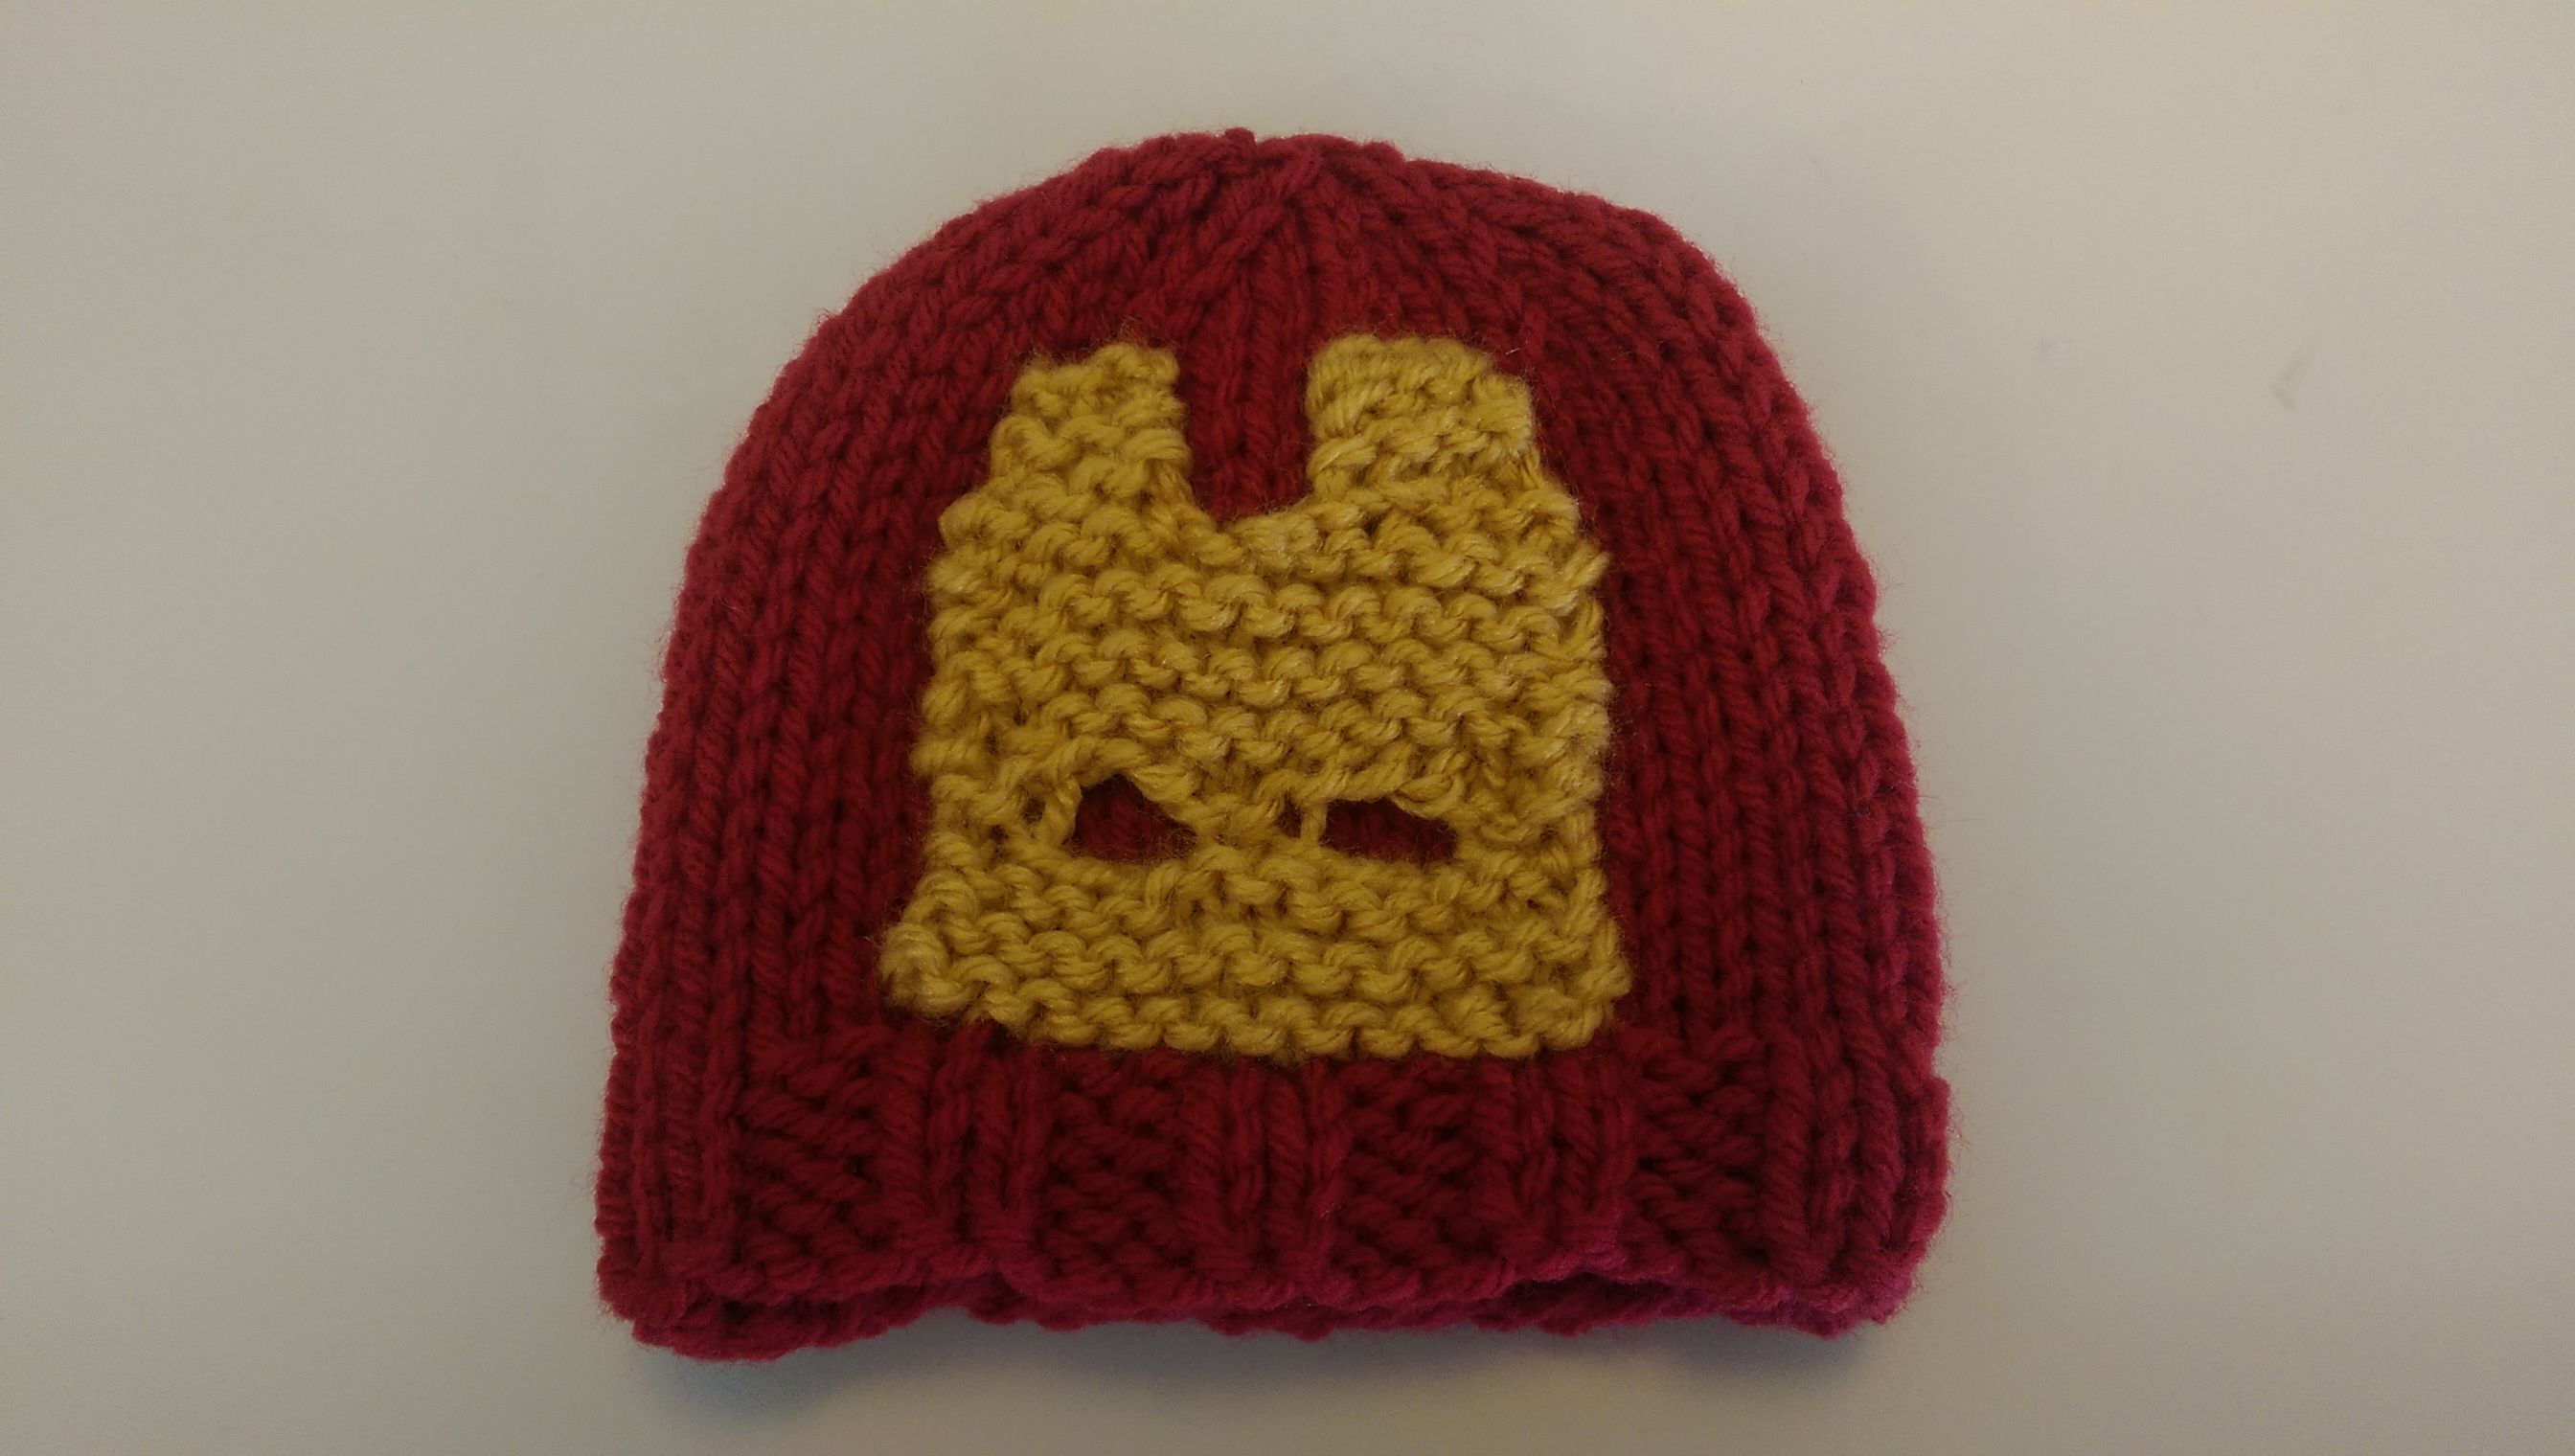 Ironman NICU baby hat   Preemie hats, Woven, Knitted hats